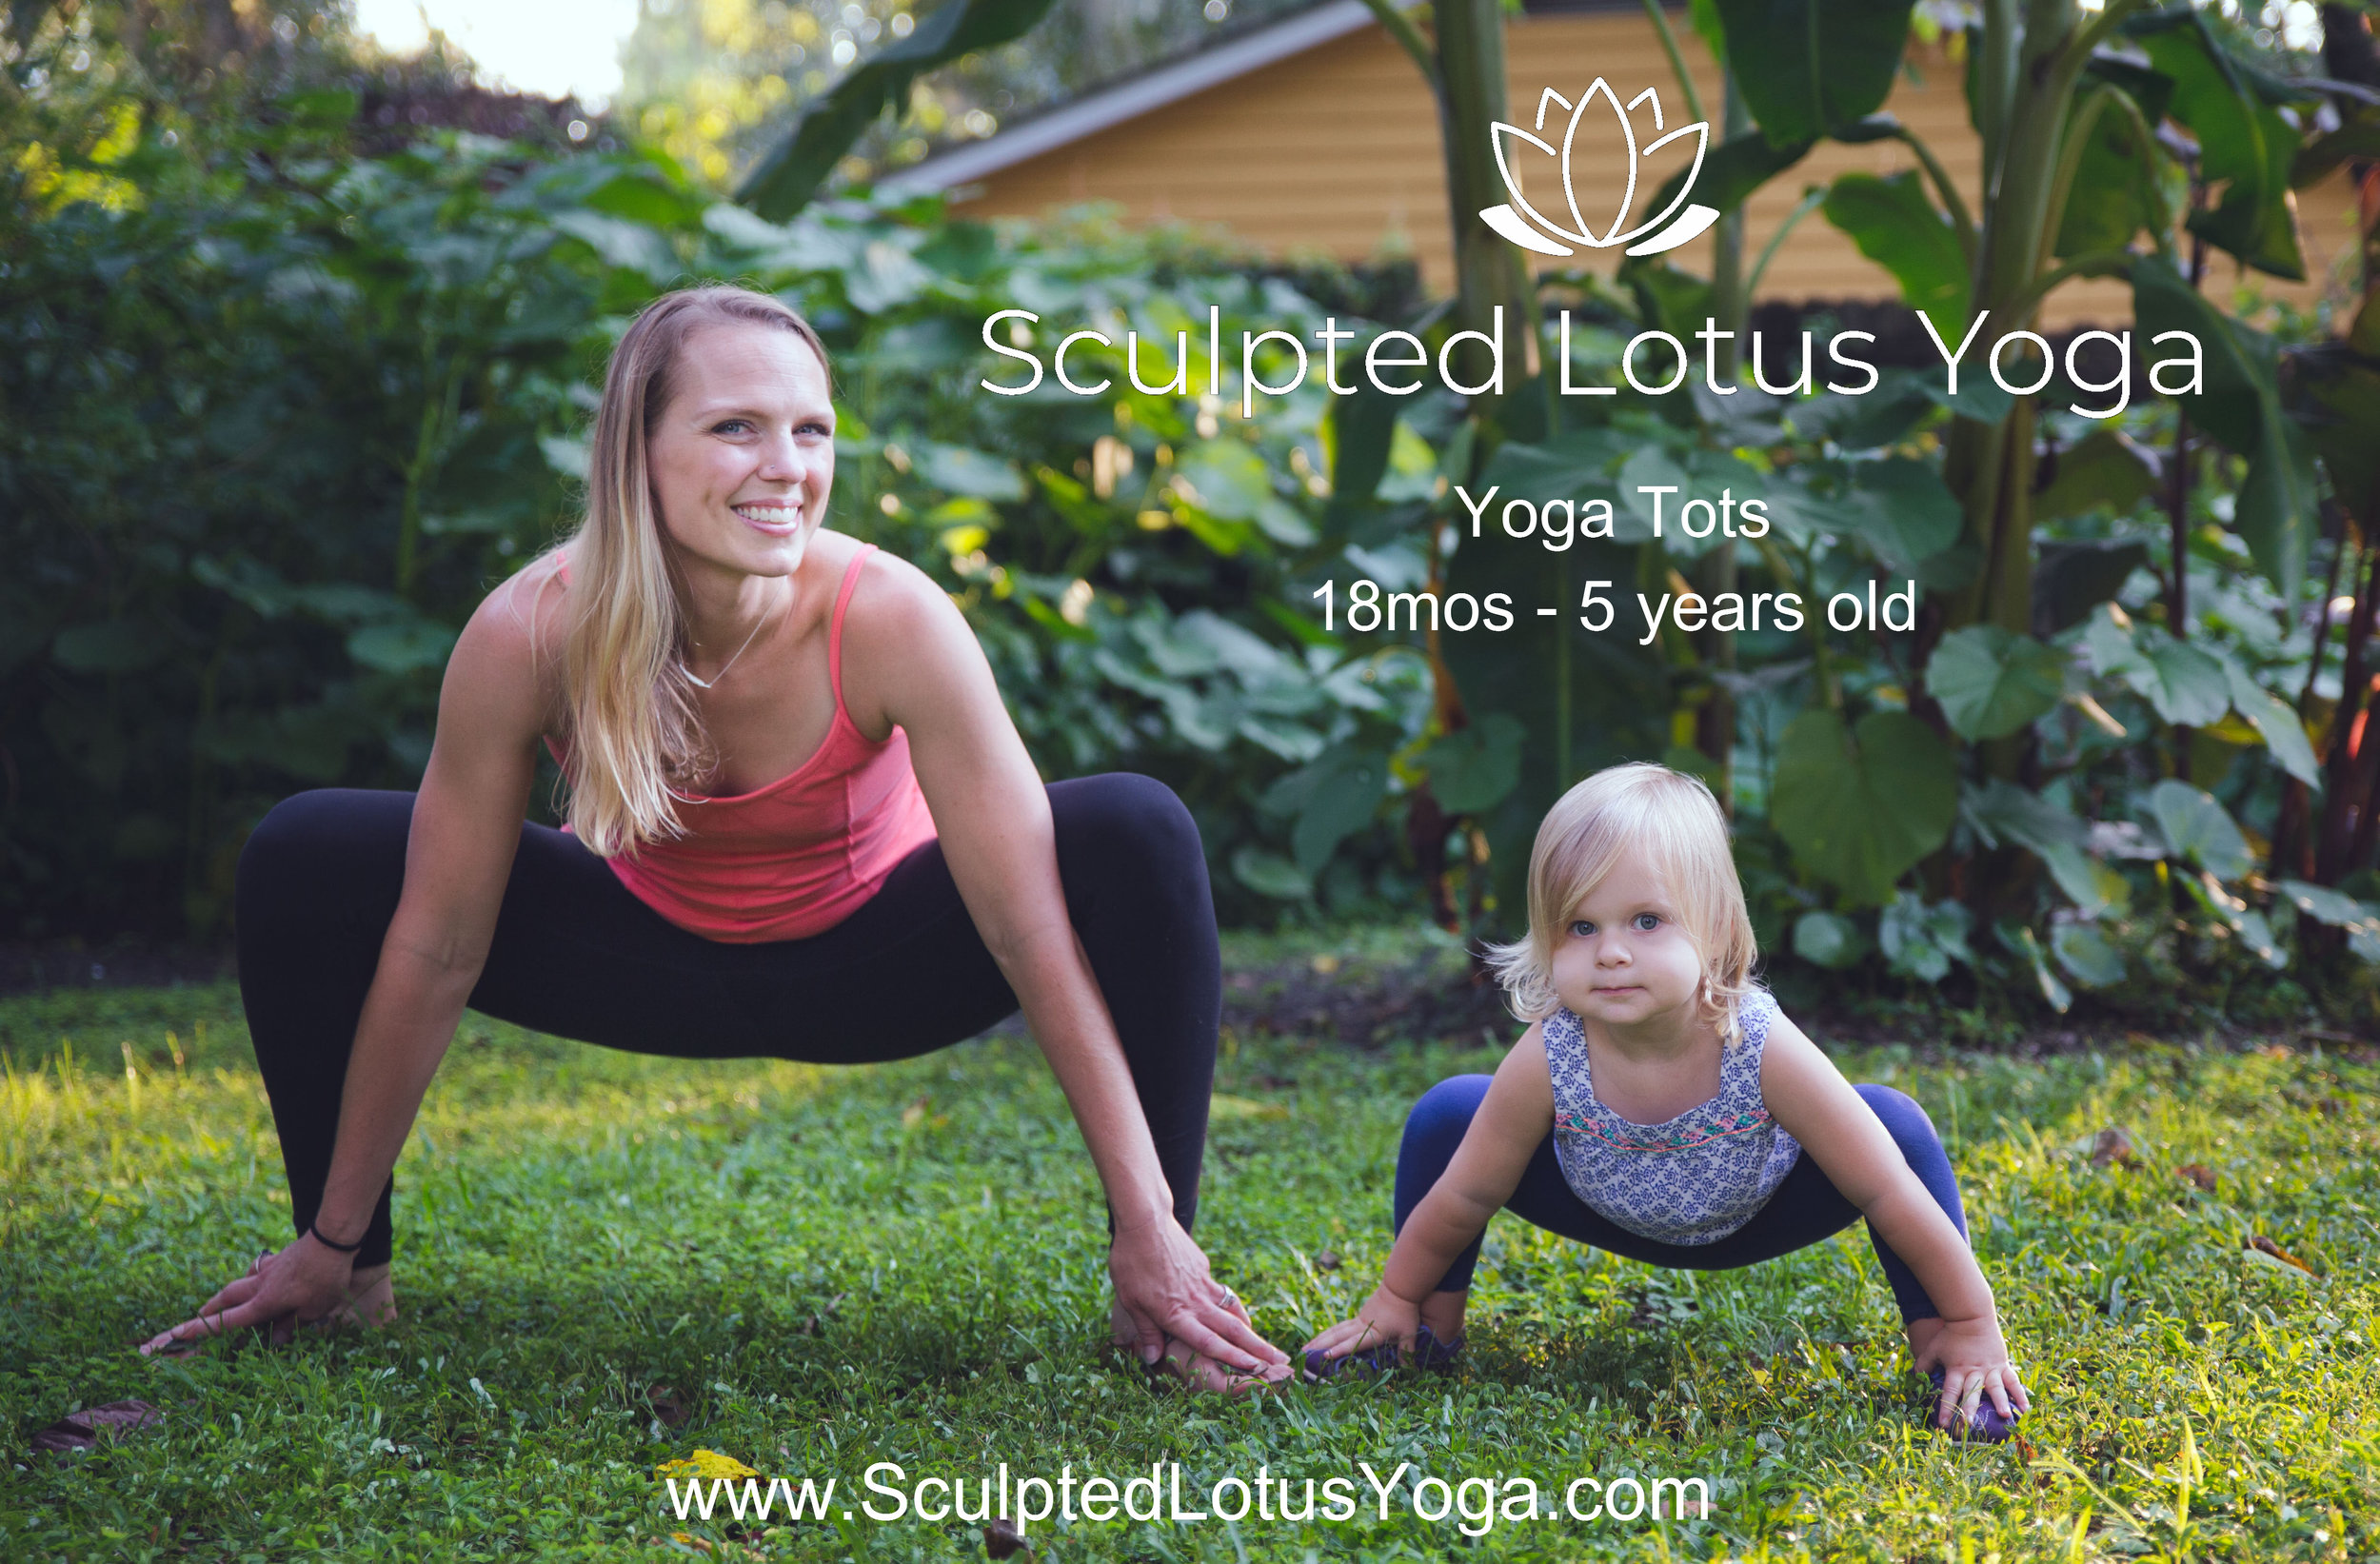 Yoga Tots18 mos-5 years - Tuesdays 3:15-4:00 pm June 4-25th - All 4 weeks: Early Bird $48 ($12.00 per class)/Week of $58 ($14.50 per class)/ $16 drop inTuesdays 3:15-4:00 pm July 9-30th - All 4 weeks: Early Bird $48 ($12.00 per class)/Week of $58 ($14.50 per class)/ $16 drop in(Sign up for all 8 weeks prior to the start of classes for $80!)Sign up down below!Sculpted Lotus Yoga does not offer make-up classes, the kids classes are non refundable but are transferable to a friend in the event that you must miss a class.